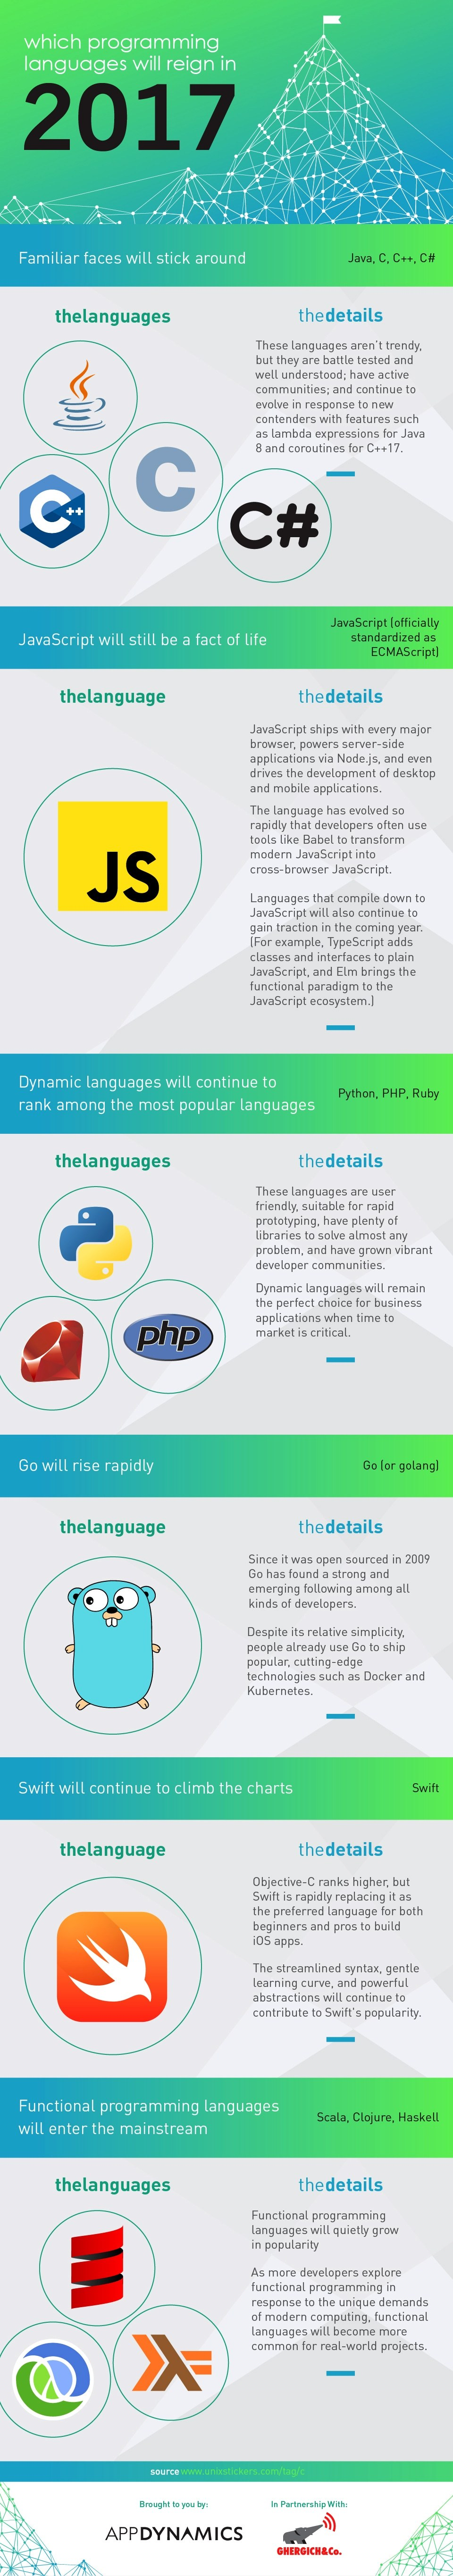 The Most Popular Programming Languages for 2017